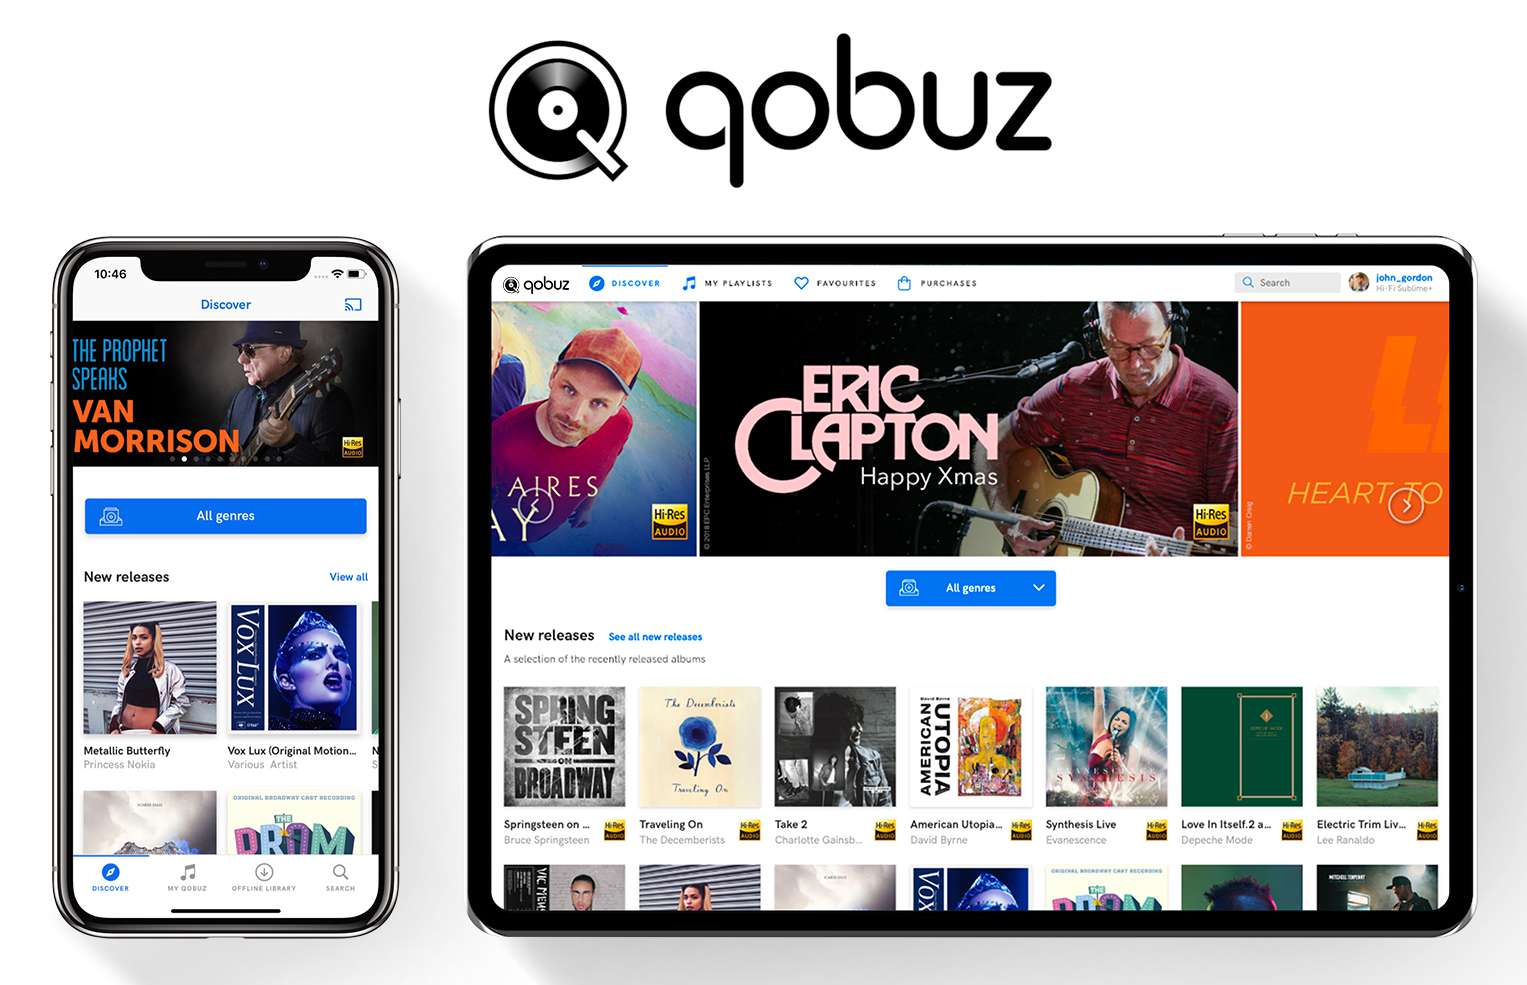 Qobuz with iPhone and Mac